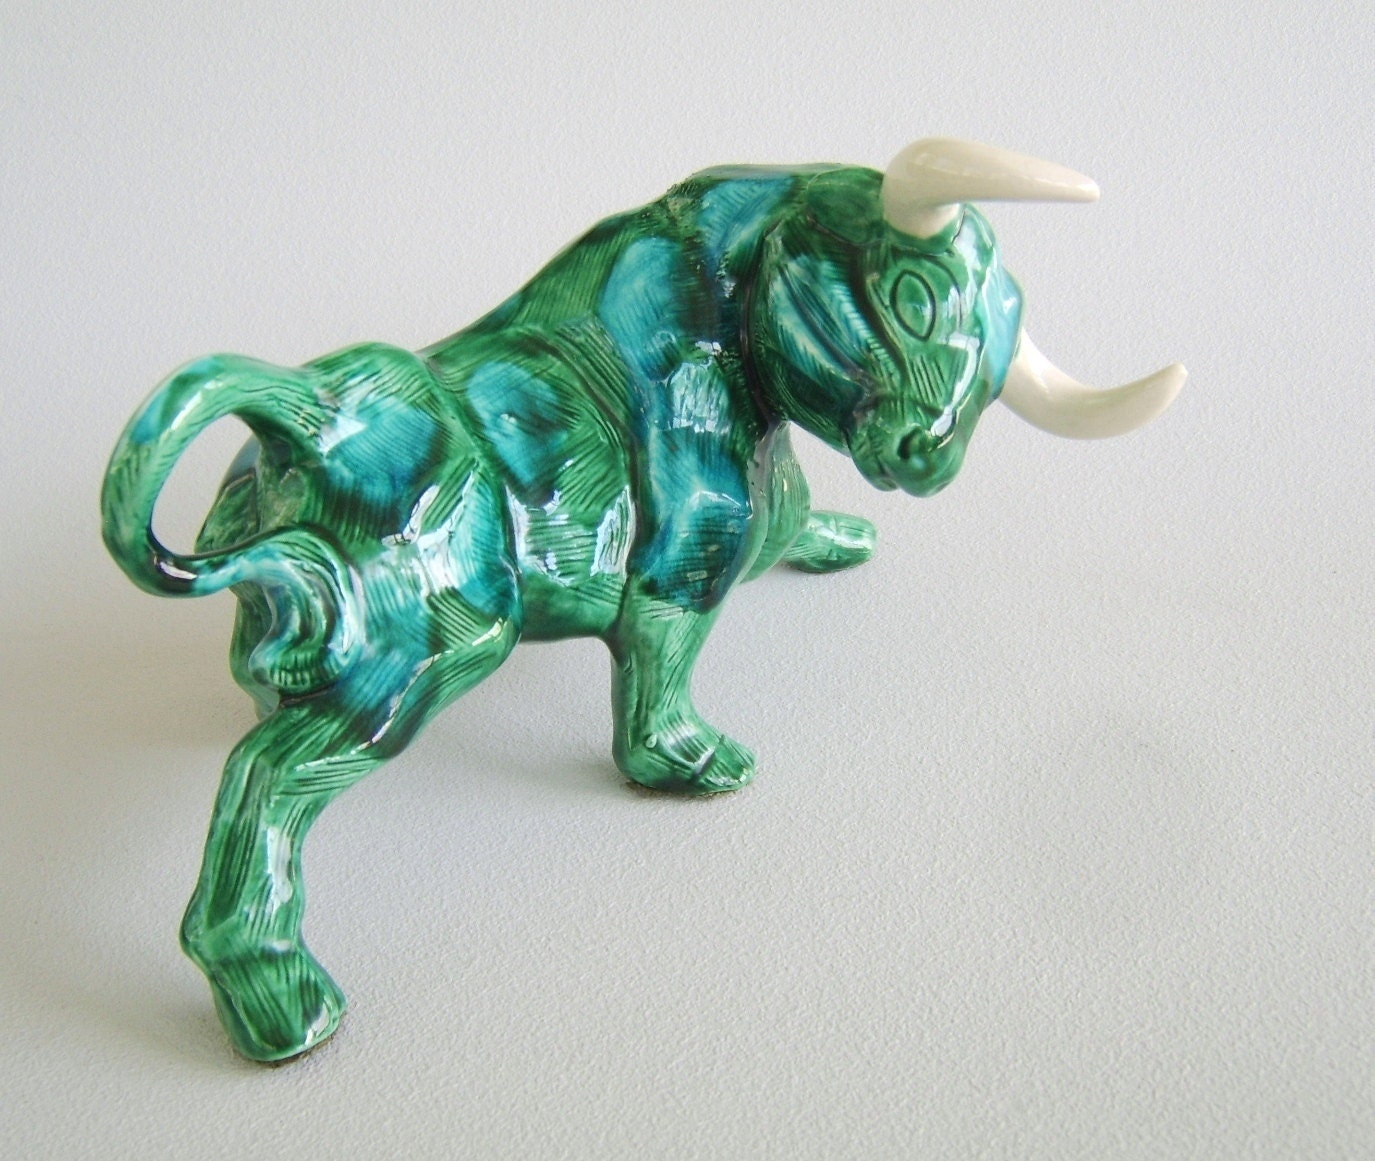 Vintage Ceramic Bull Figurine Inarco Japan Green Aqua